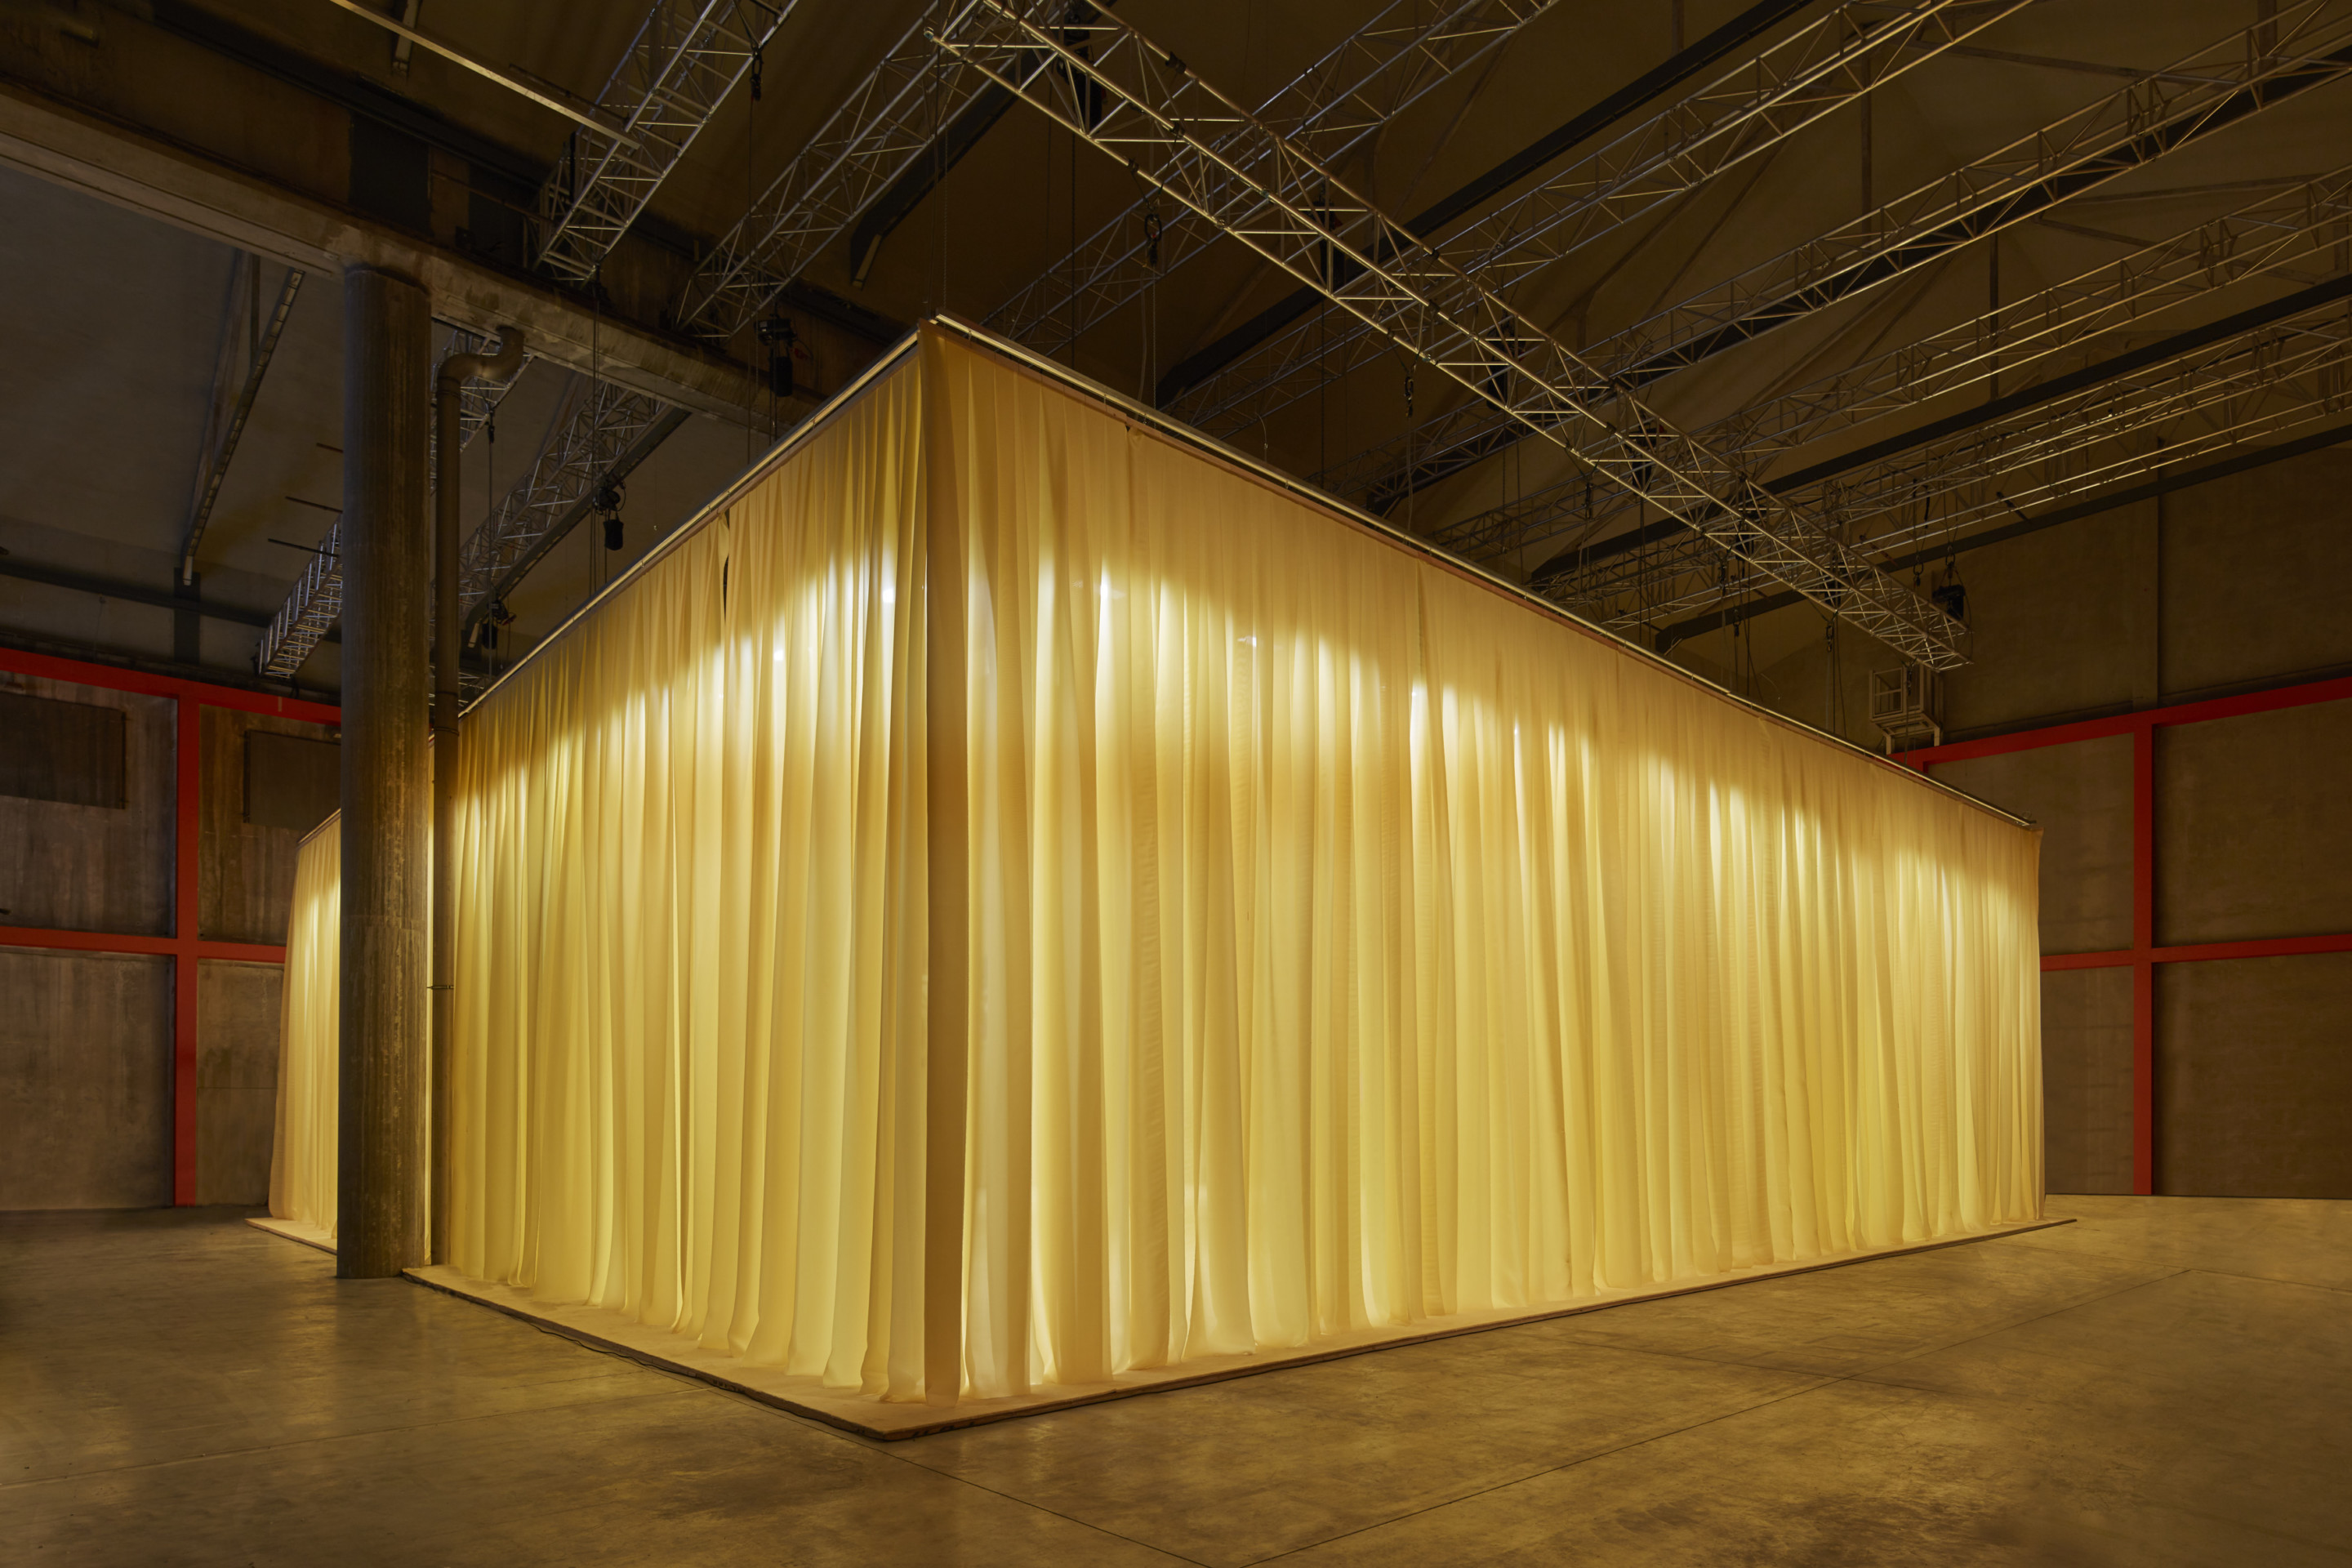 A yellow curtained area inside of a concrete arts space